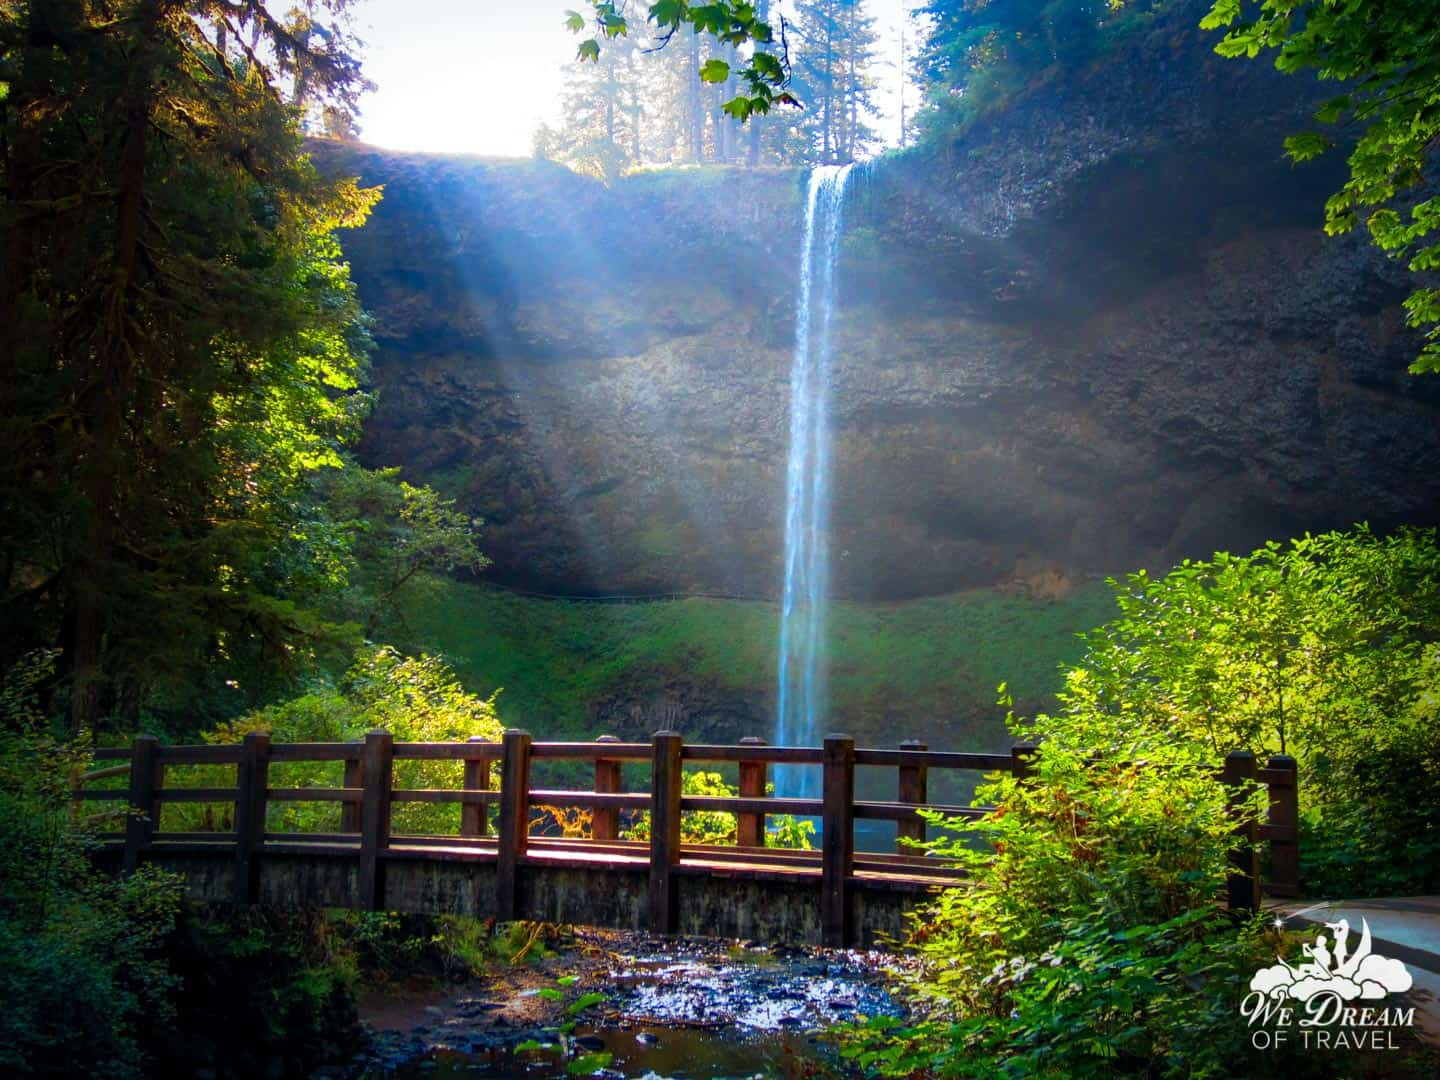 Of the 10 you will discover, South Falls is the most popular and beautiful waterfall in Silver Falls State Park.